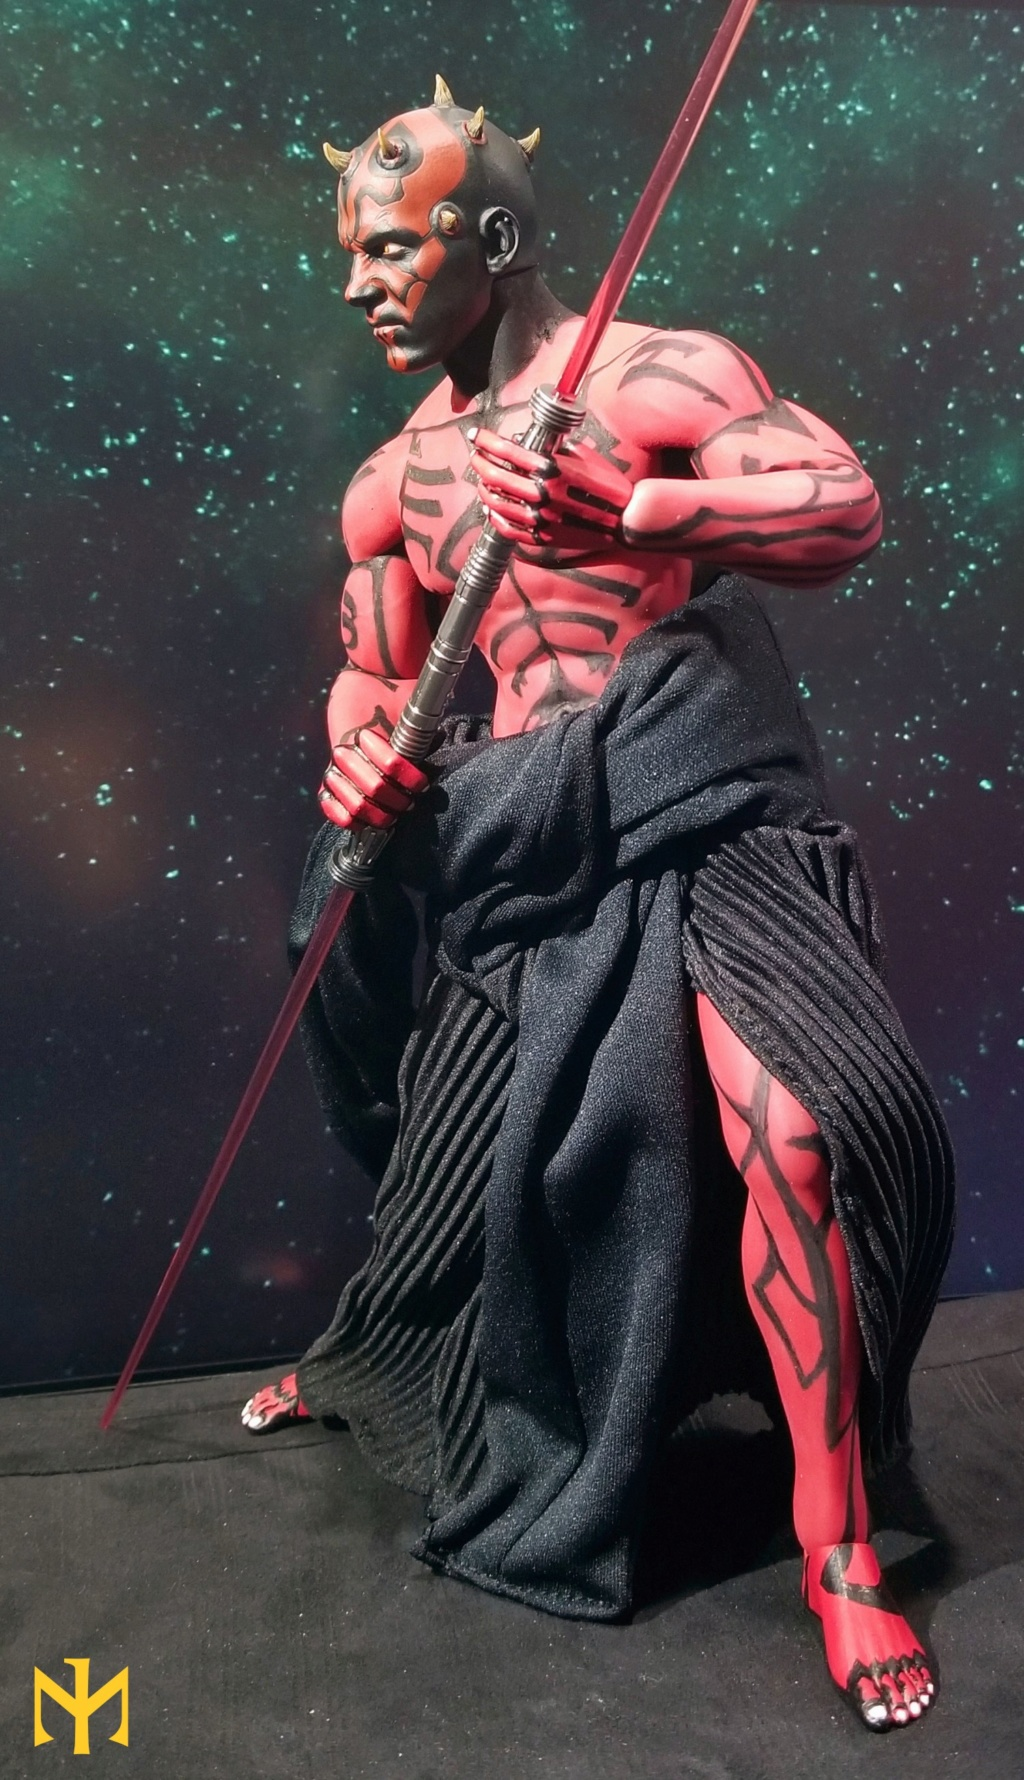 STAR WARS Updated Darth Maul Custom Part IV Maul 2.0 (photo heavy) Swdmt014